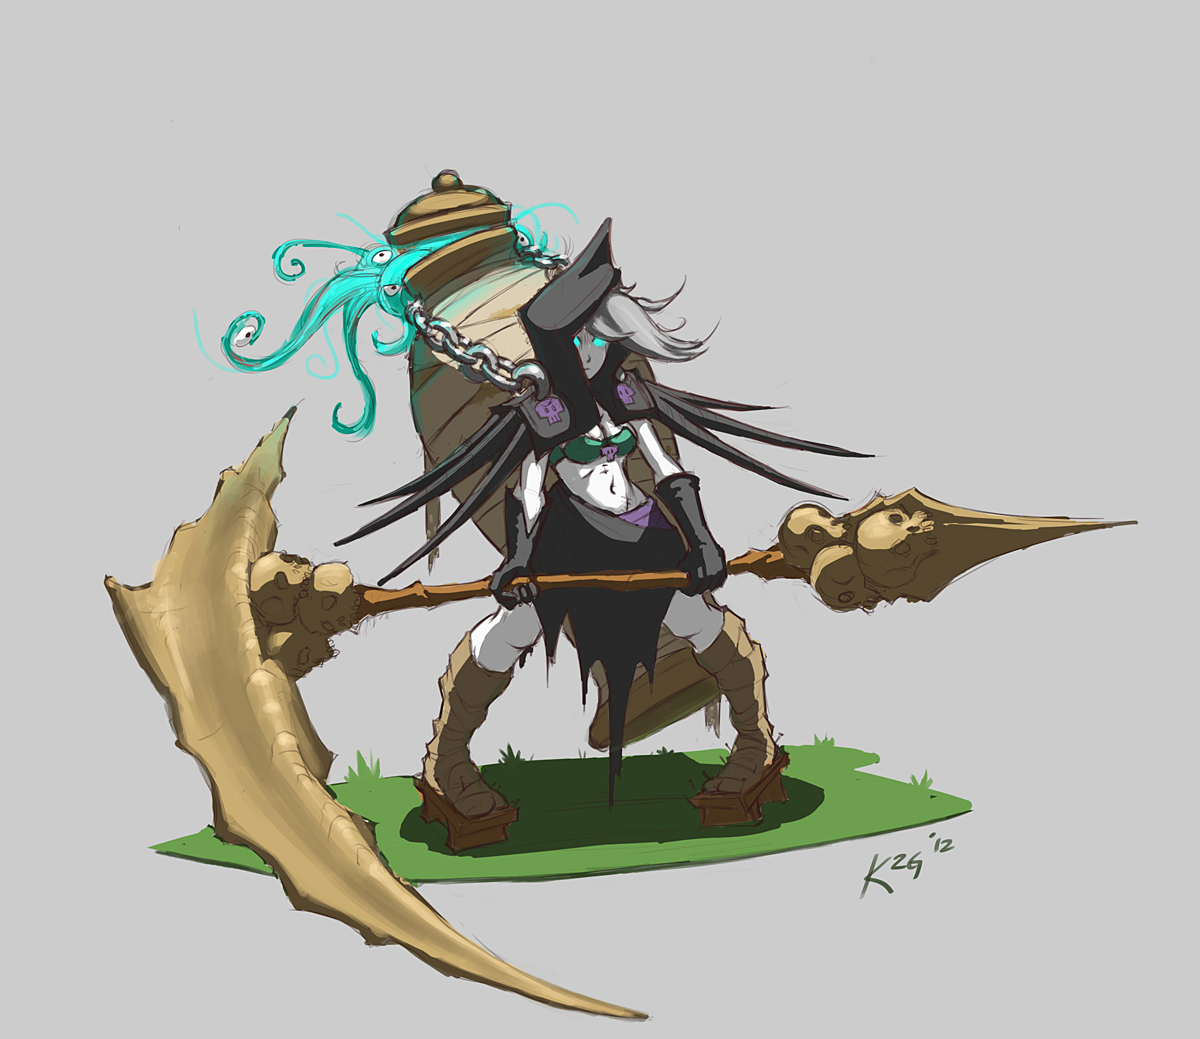 Cow And Cheese Art: Forum Art Challenge - Grim Reaper